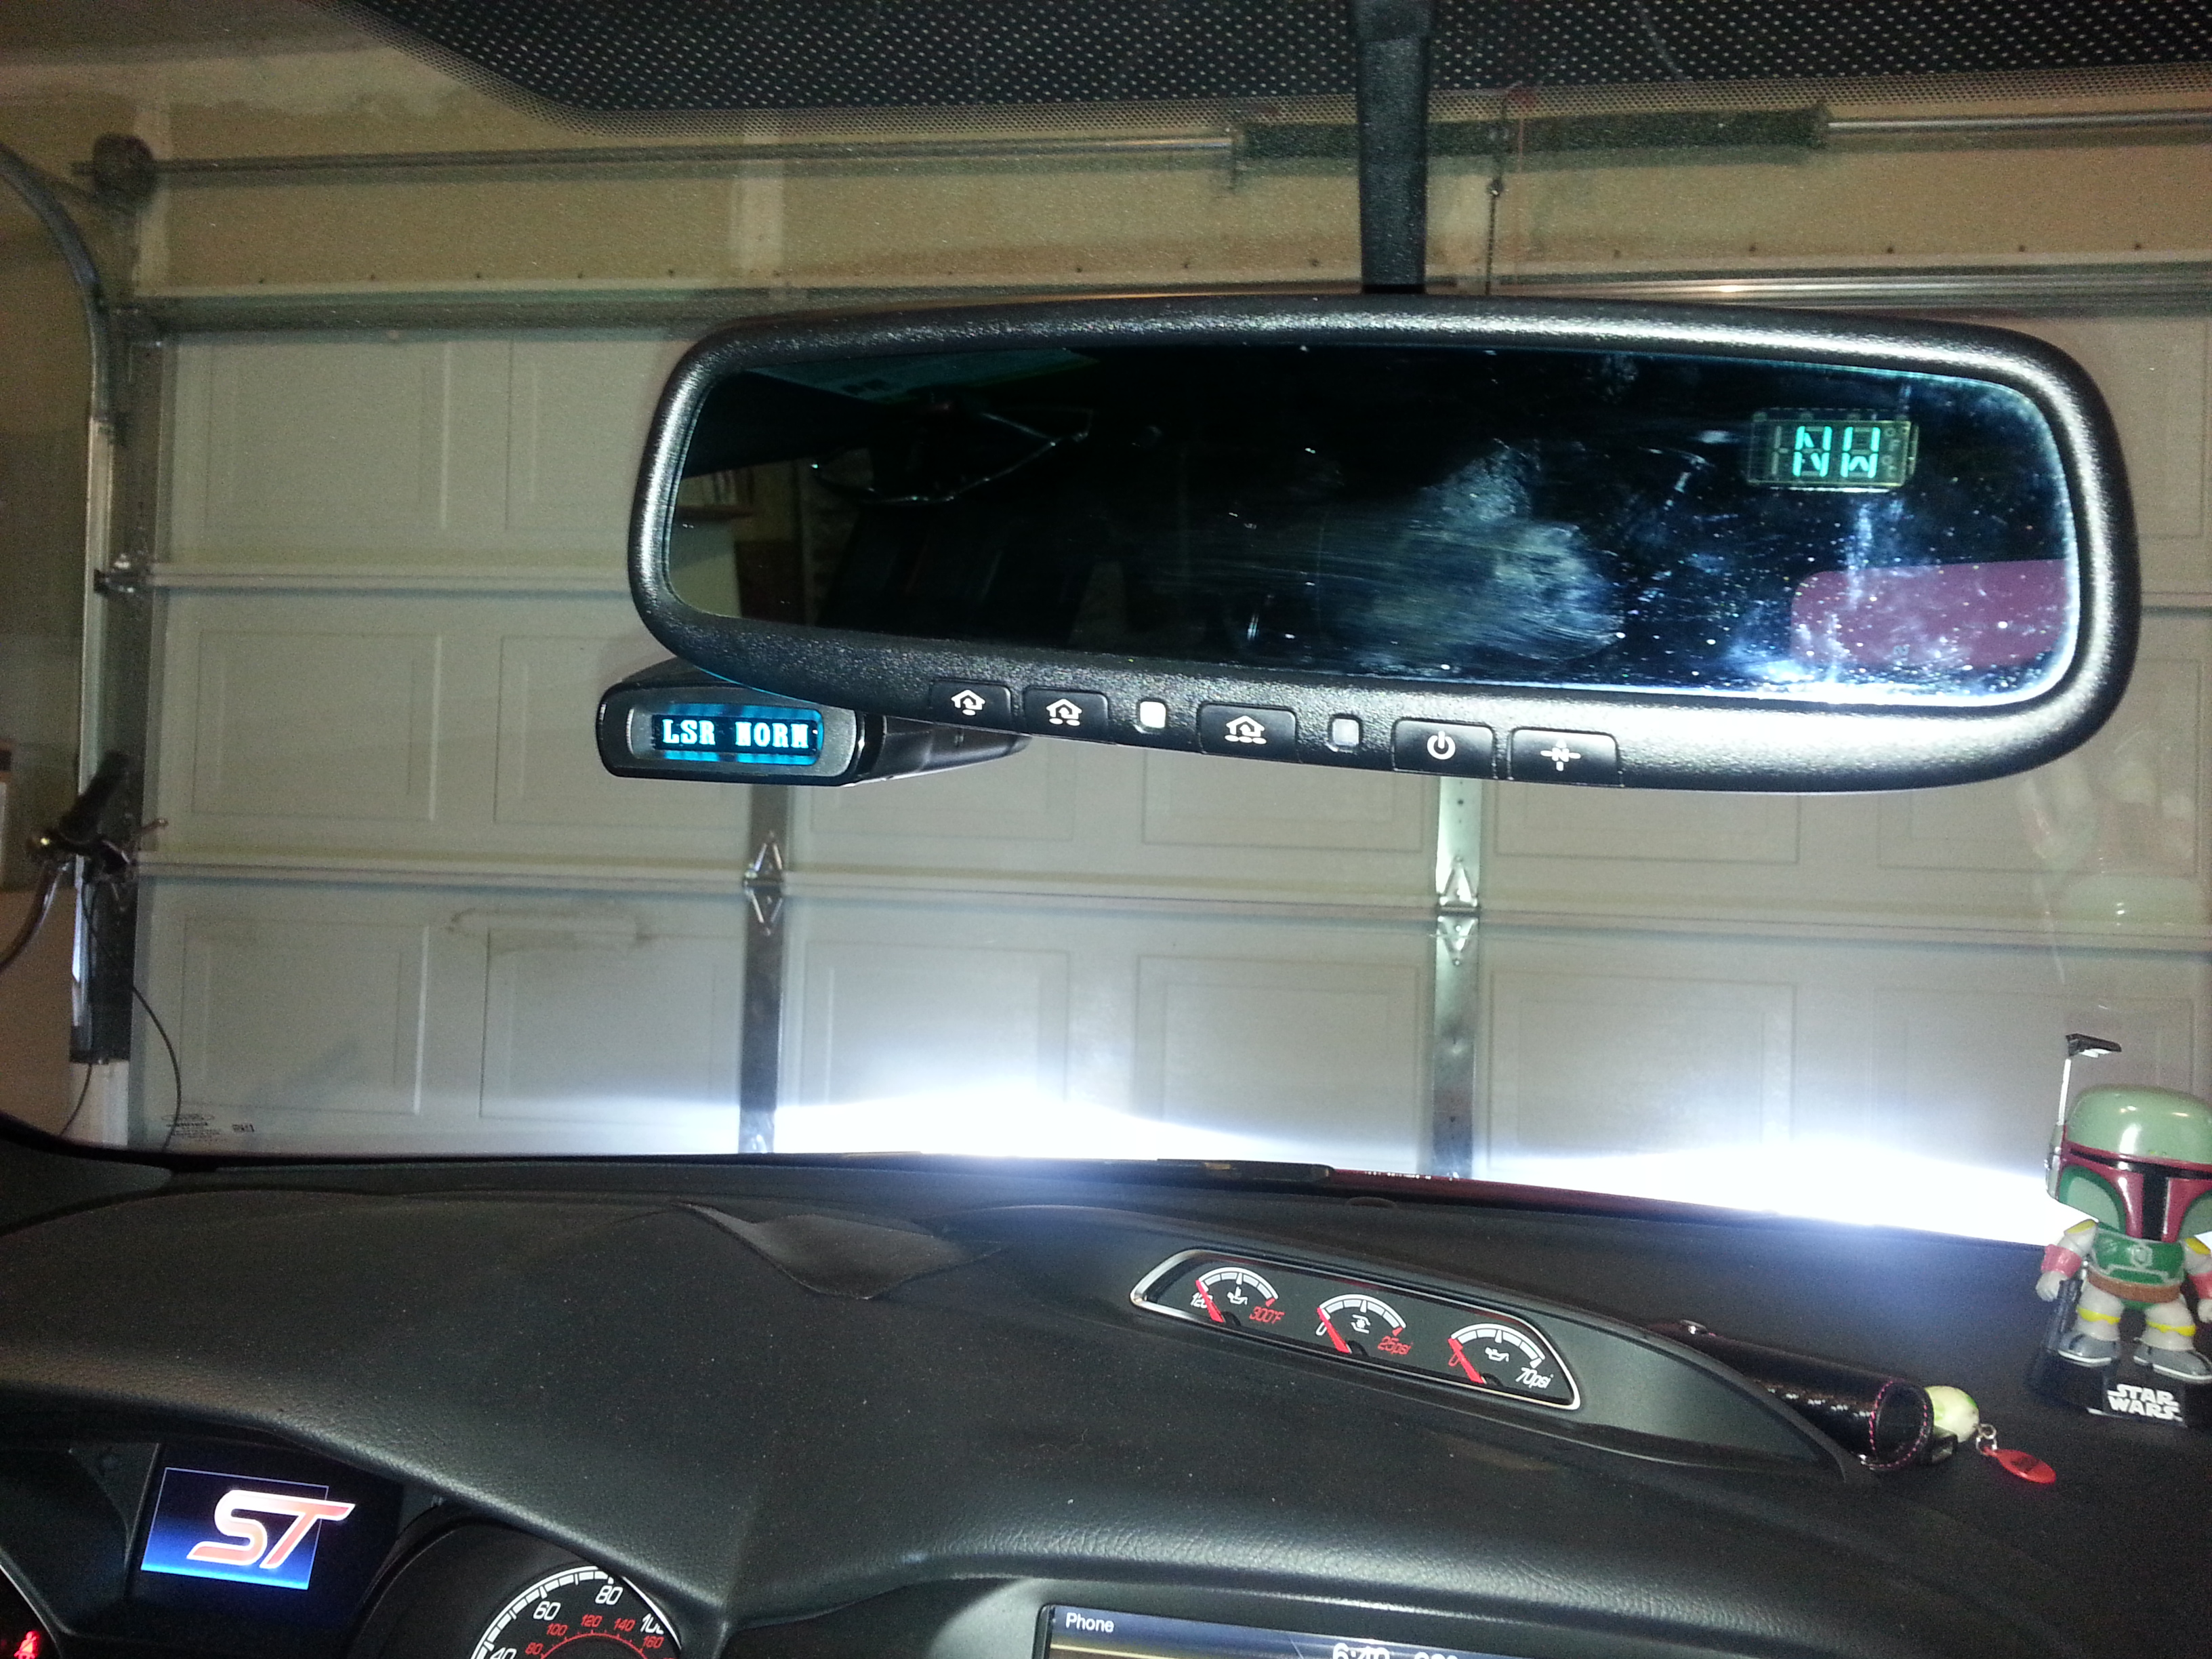 Ztvhl3 Mirror Wiring Diagram Auto Electrical 1996 Honda Pport Stereo Hyundai Install The Rearview Gntks